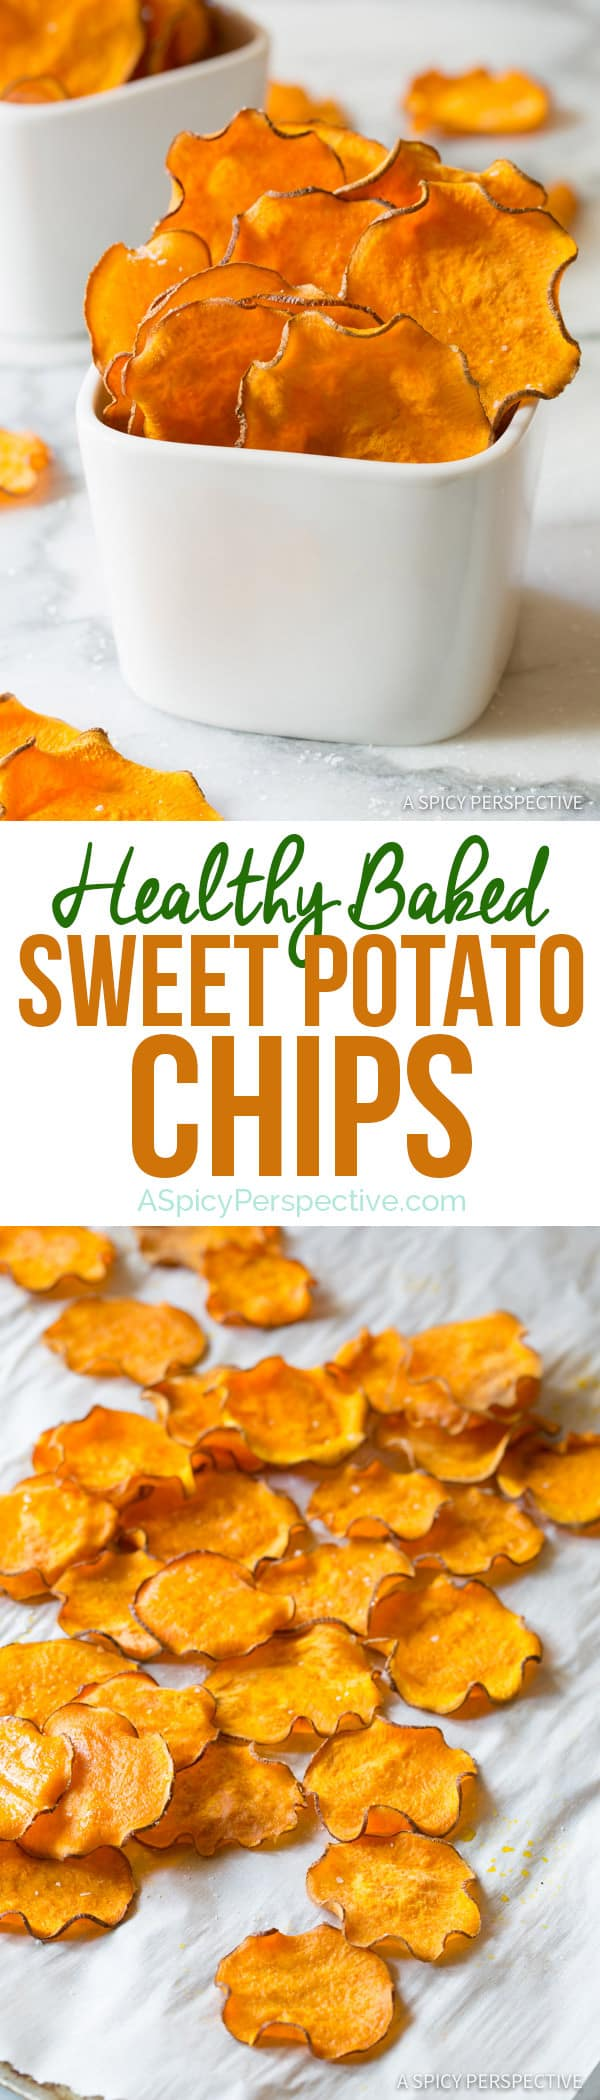 Baked sweet potato chips recipe video a spicy perspective healthy 3 ingredient baked sweet potato chips recipe vegan paleo gluten free forumfinder Images